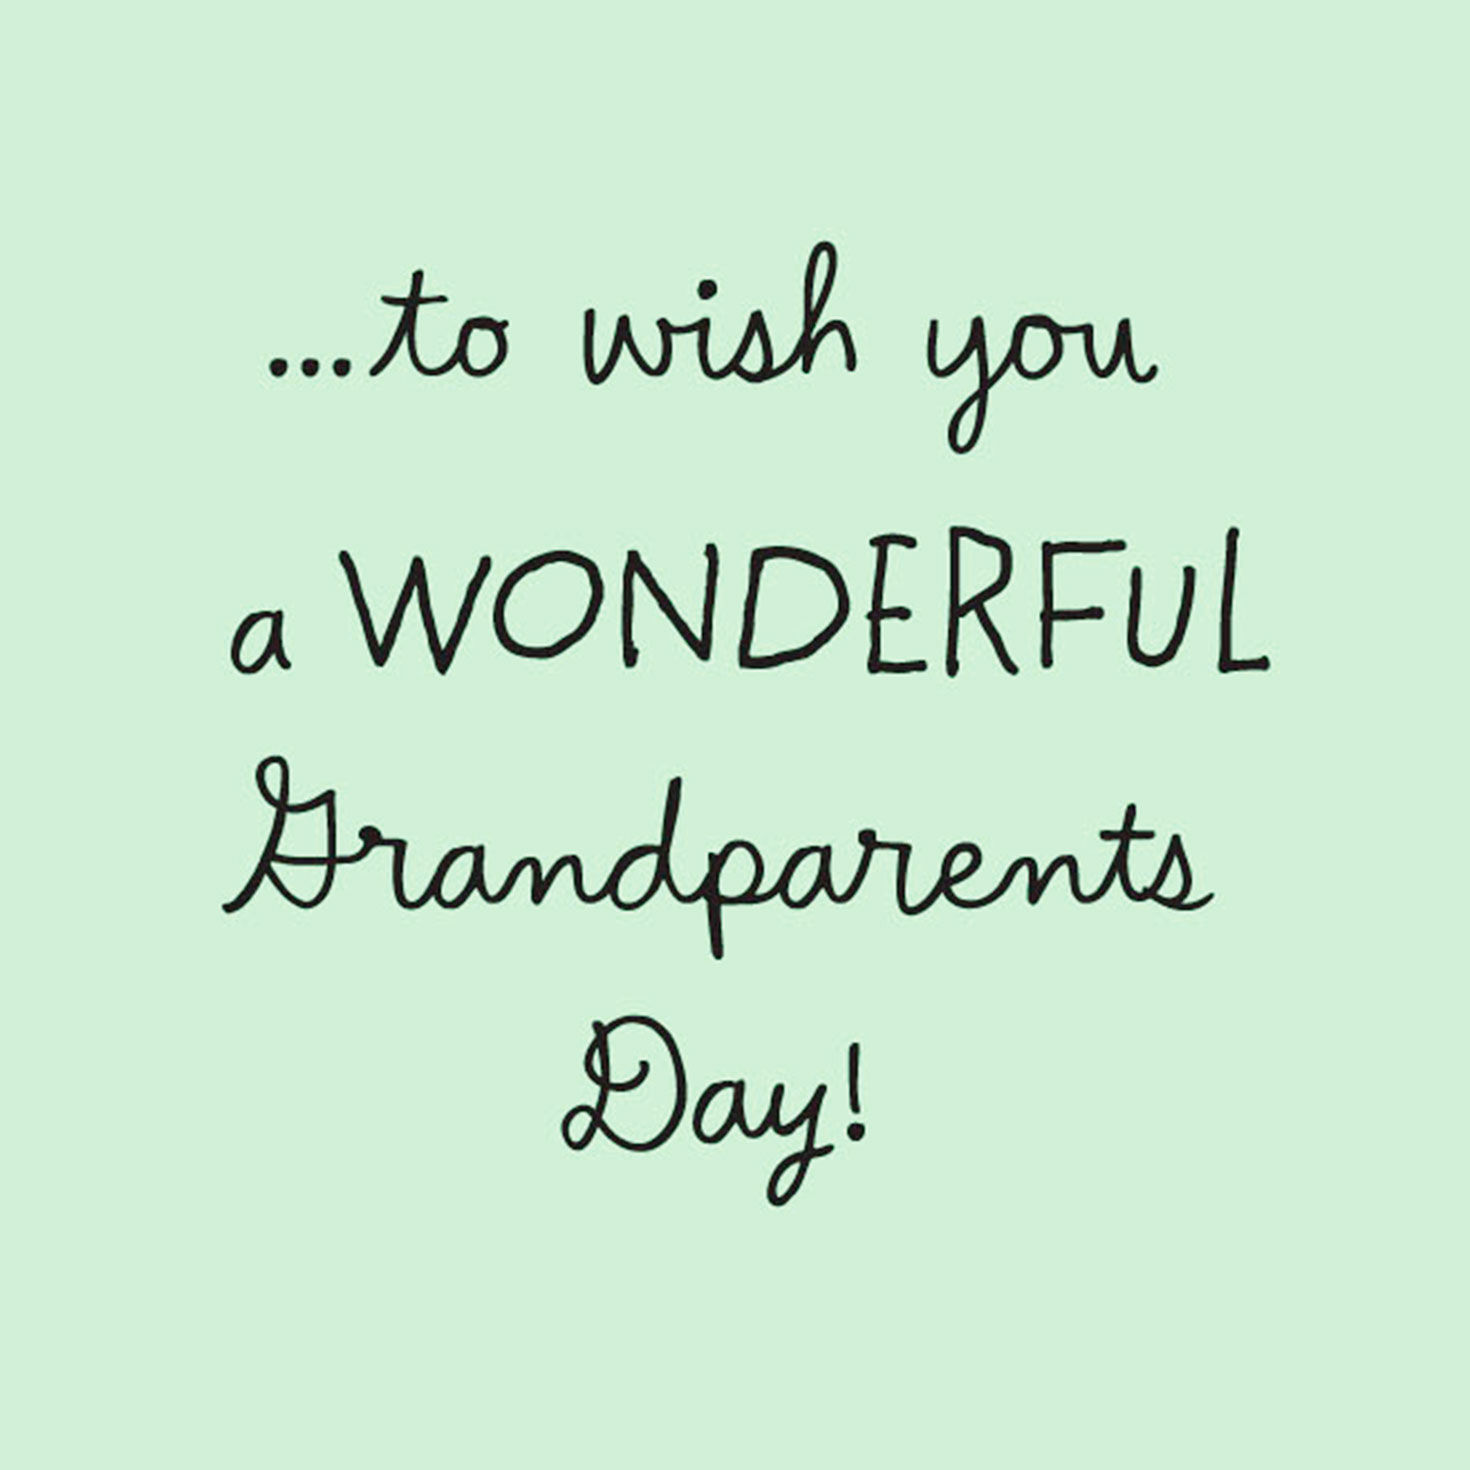 picture regarding Grandparents Day Cards Printable referred to as Grandparents Working day Playing cards Hallmark